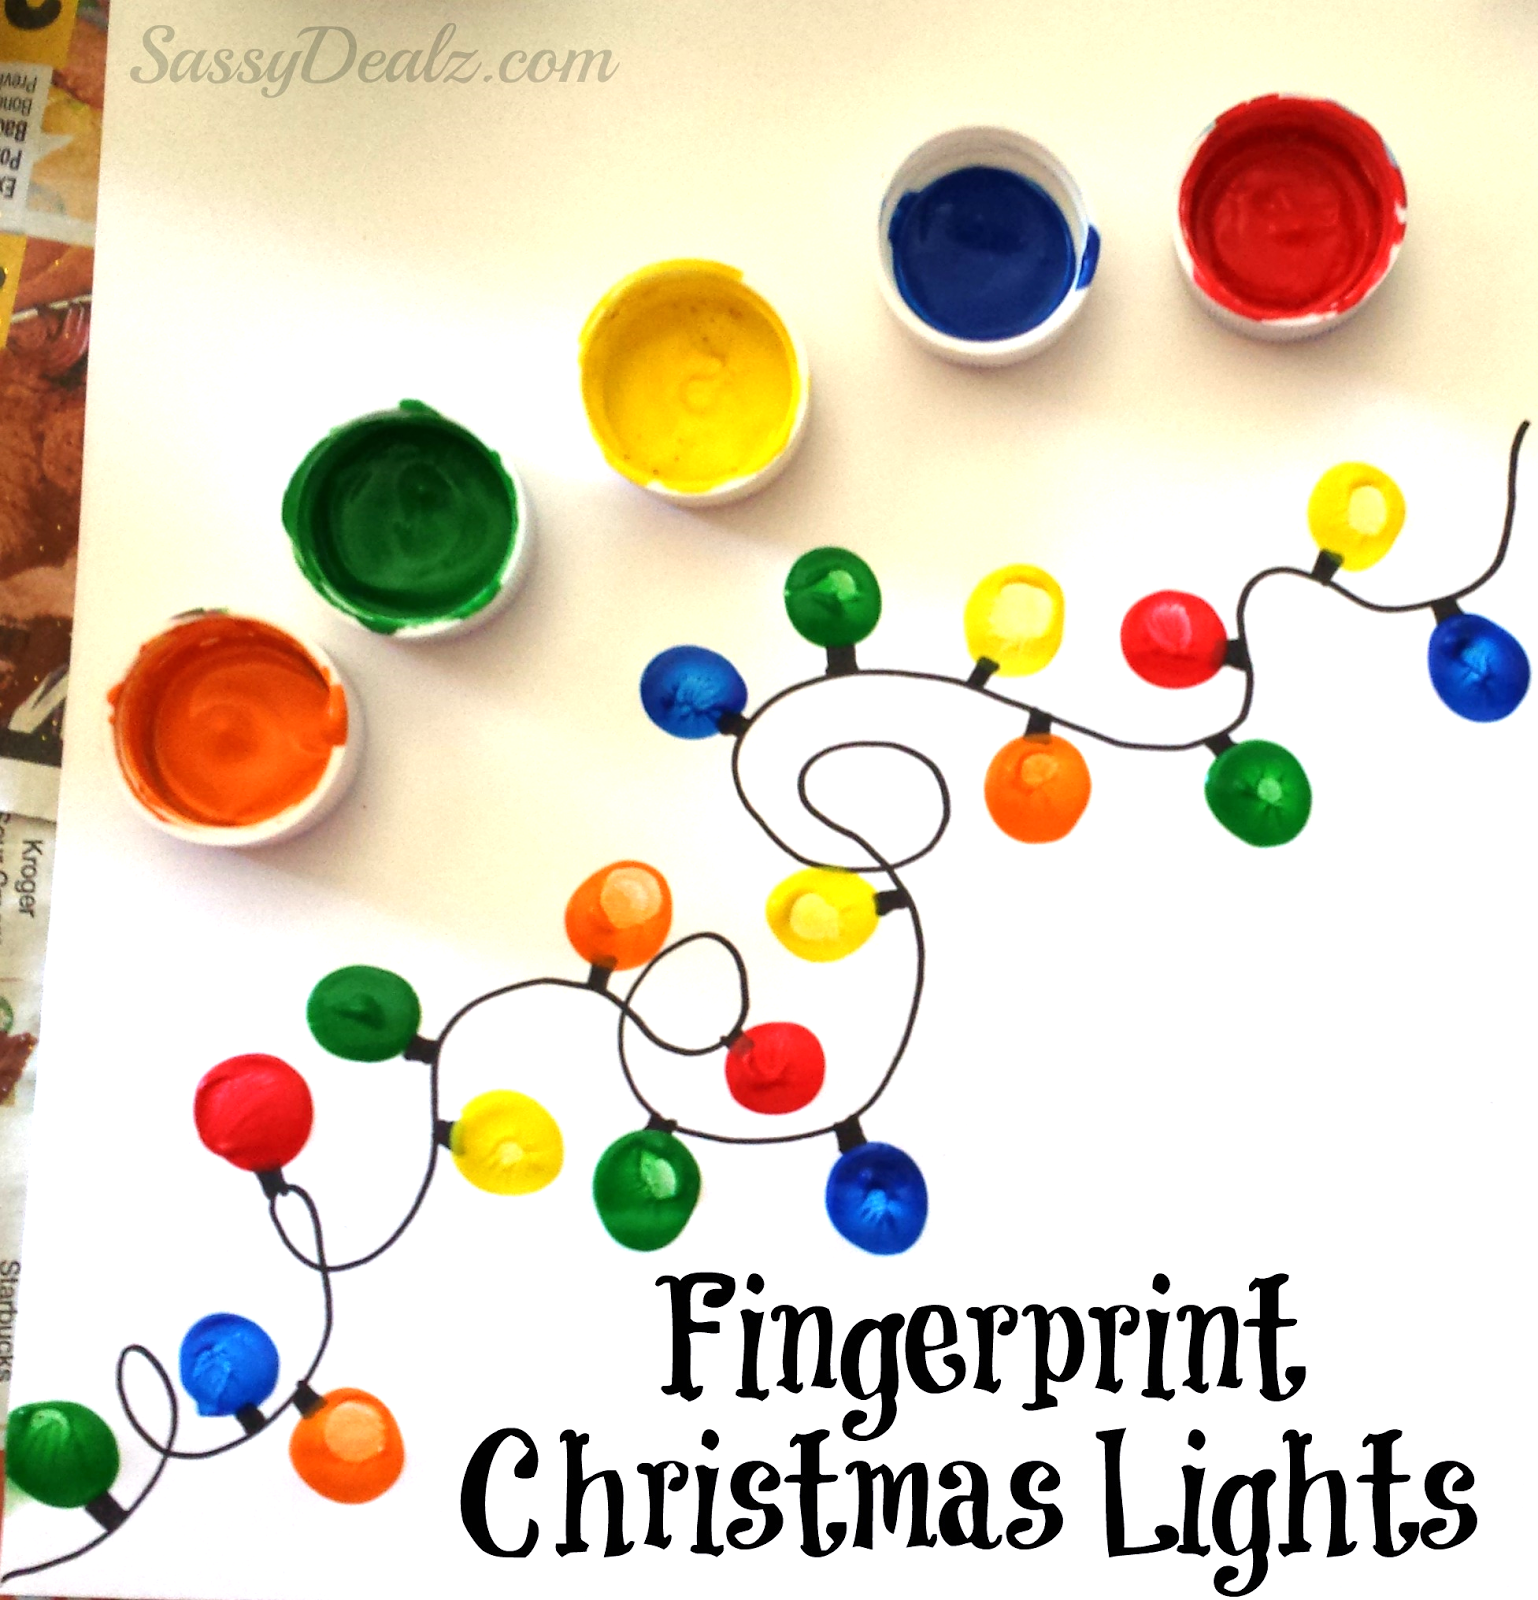 Coloring Christmas Lights With Sharpie Fingerprint Light Craft For Kids DIY Card Idea